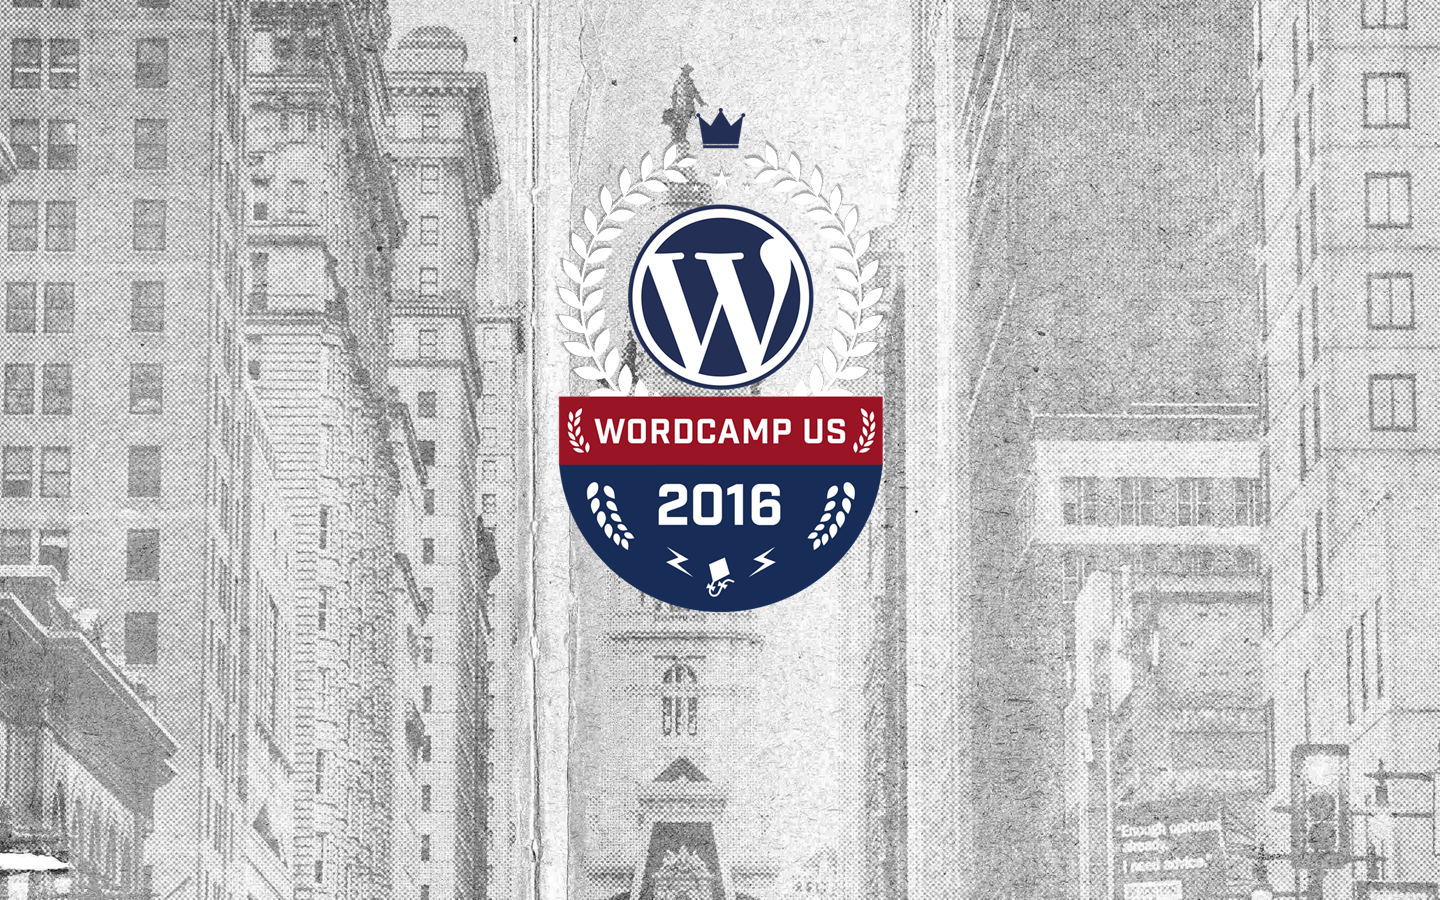 WordCamp US 2016 Logo Over a balck and white image of Philadelphia, PA